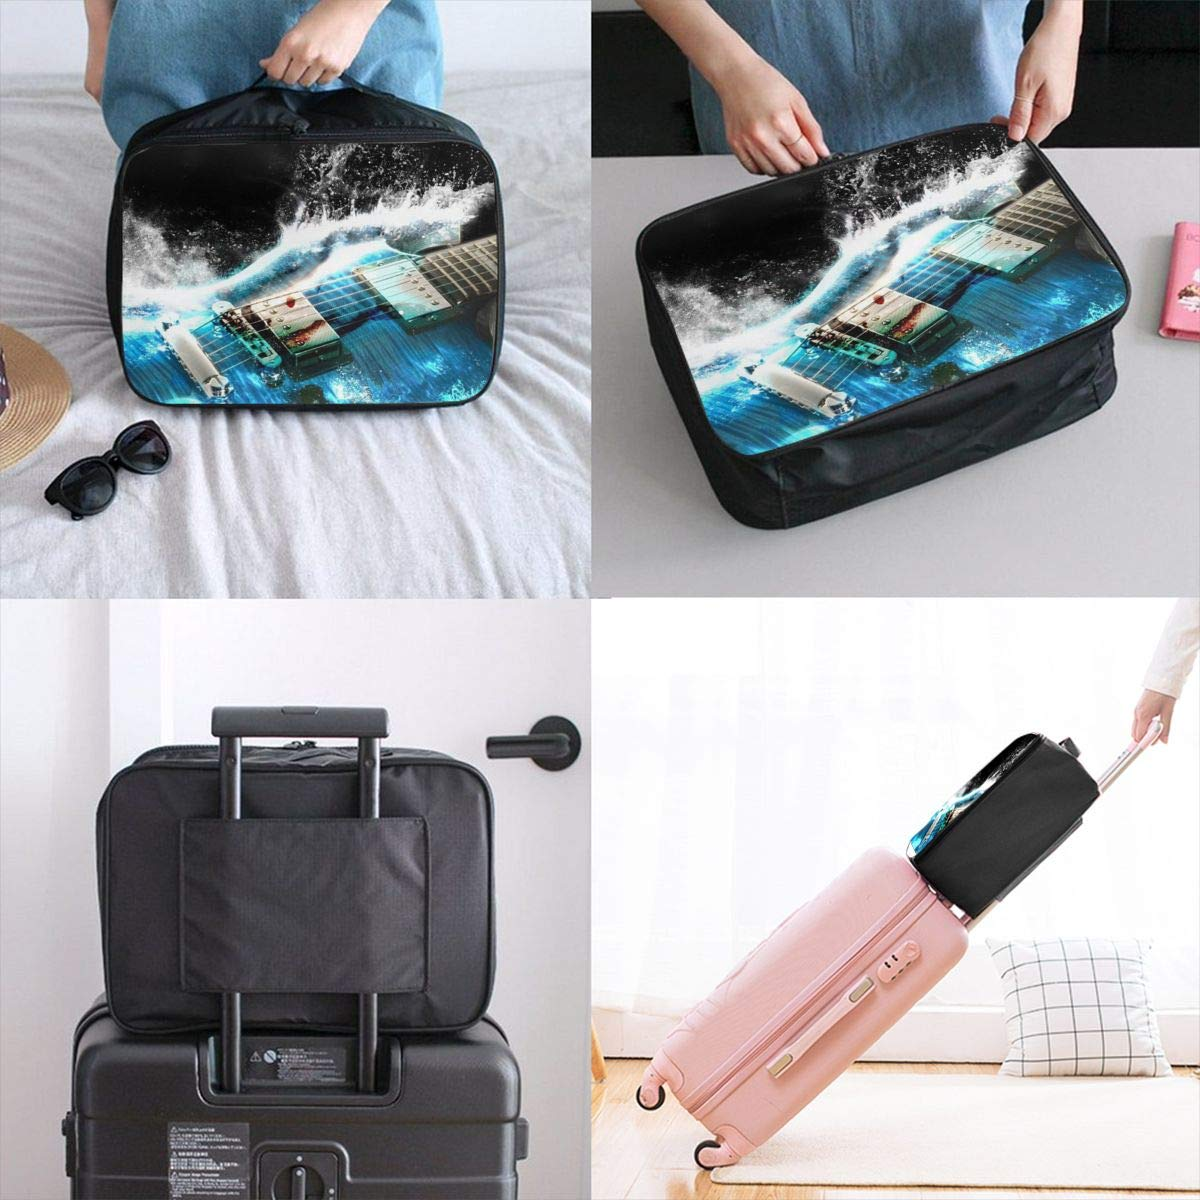 Guitar Ice Navy Blue Travel Lightweight Waterproof Folding Storage Portable Luggage Duffle Tote Bag Large Capacity In Trolley Handle Bags 6x11x15 Inch